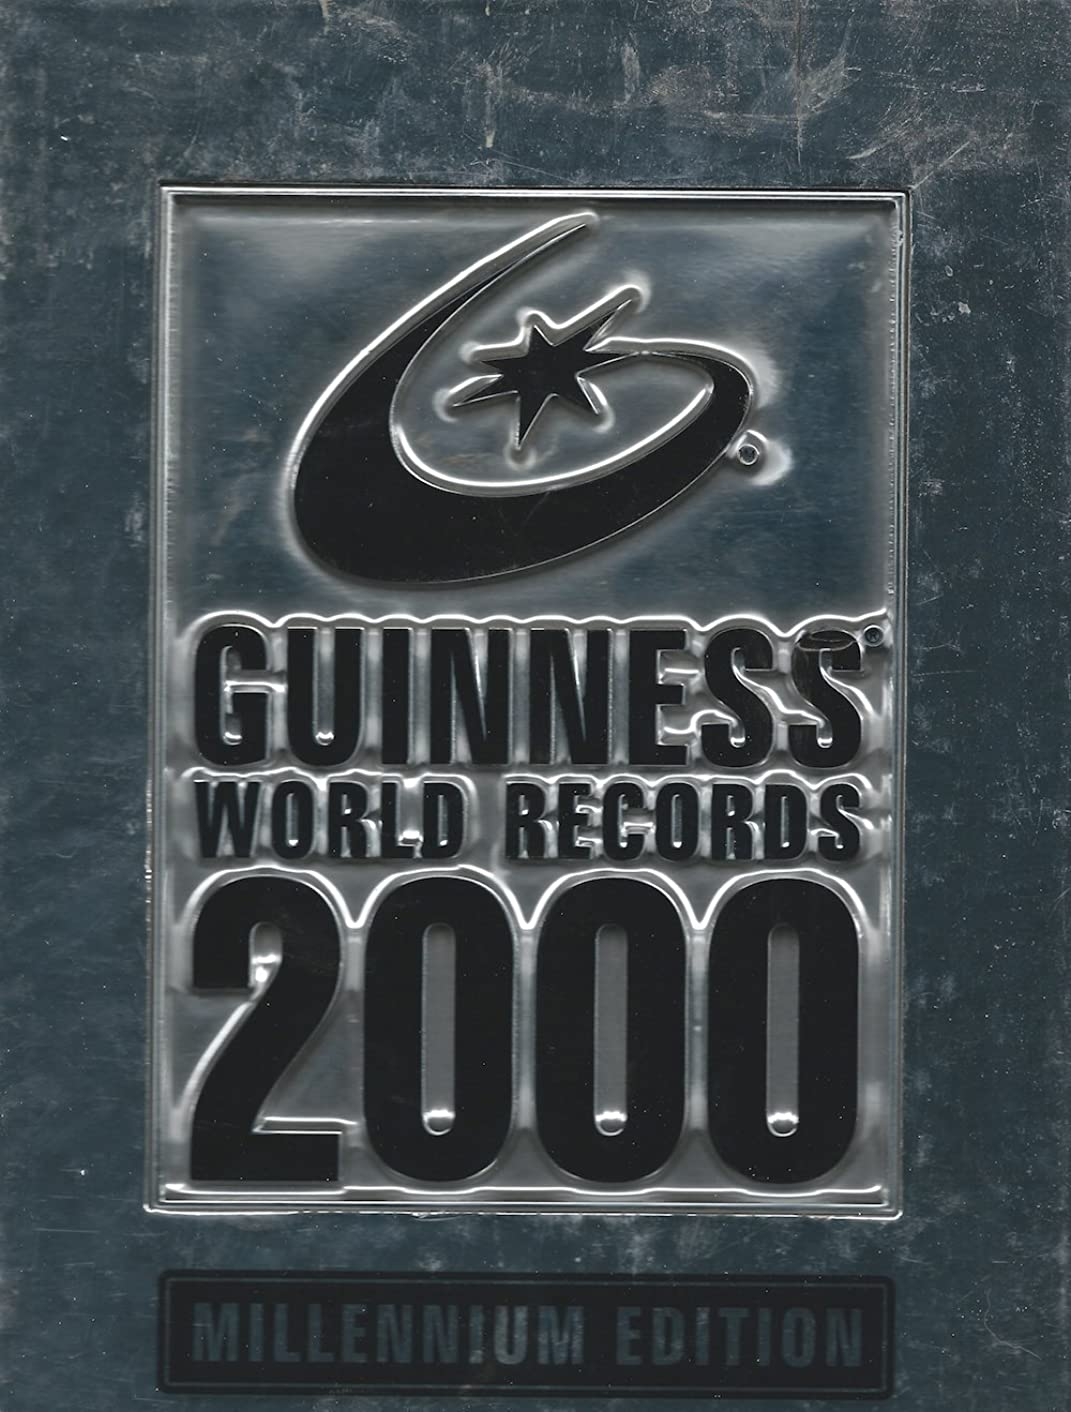 Guiness World Records 2000